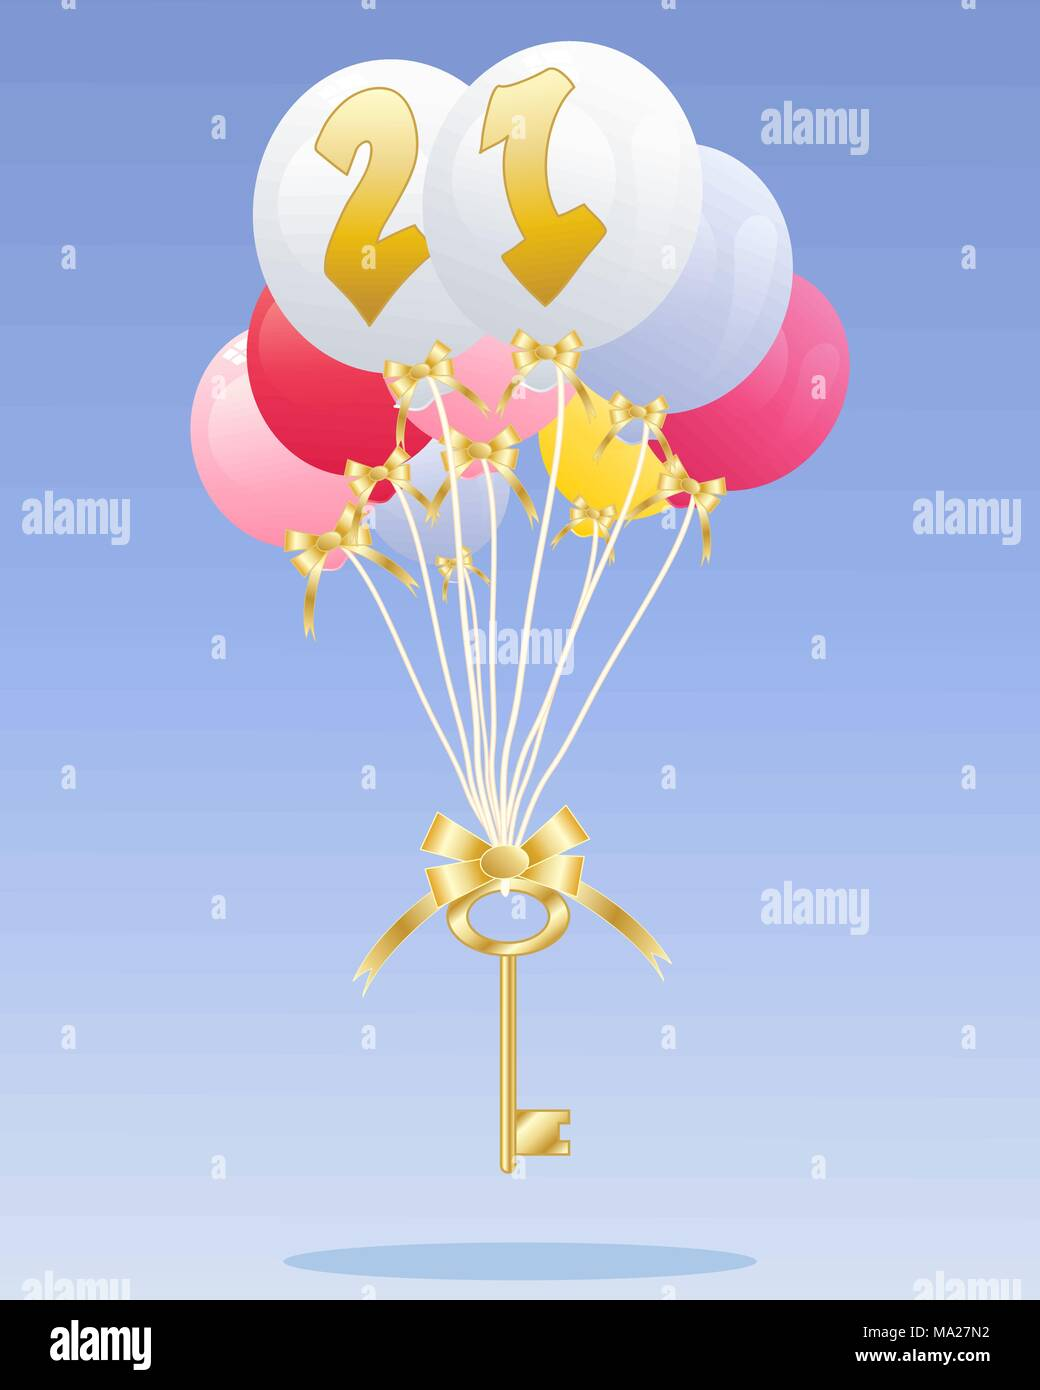 an illustration of a group of colorful balloons with the number 21 in gold floating with a golden key on a blue background with space for text - Stock Image